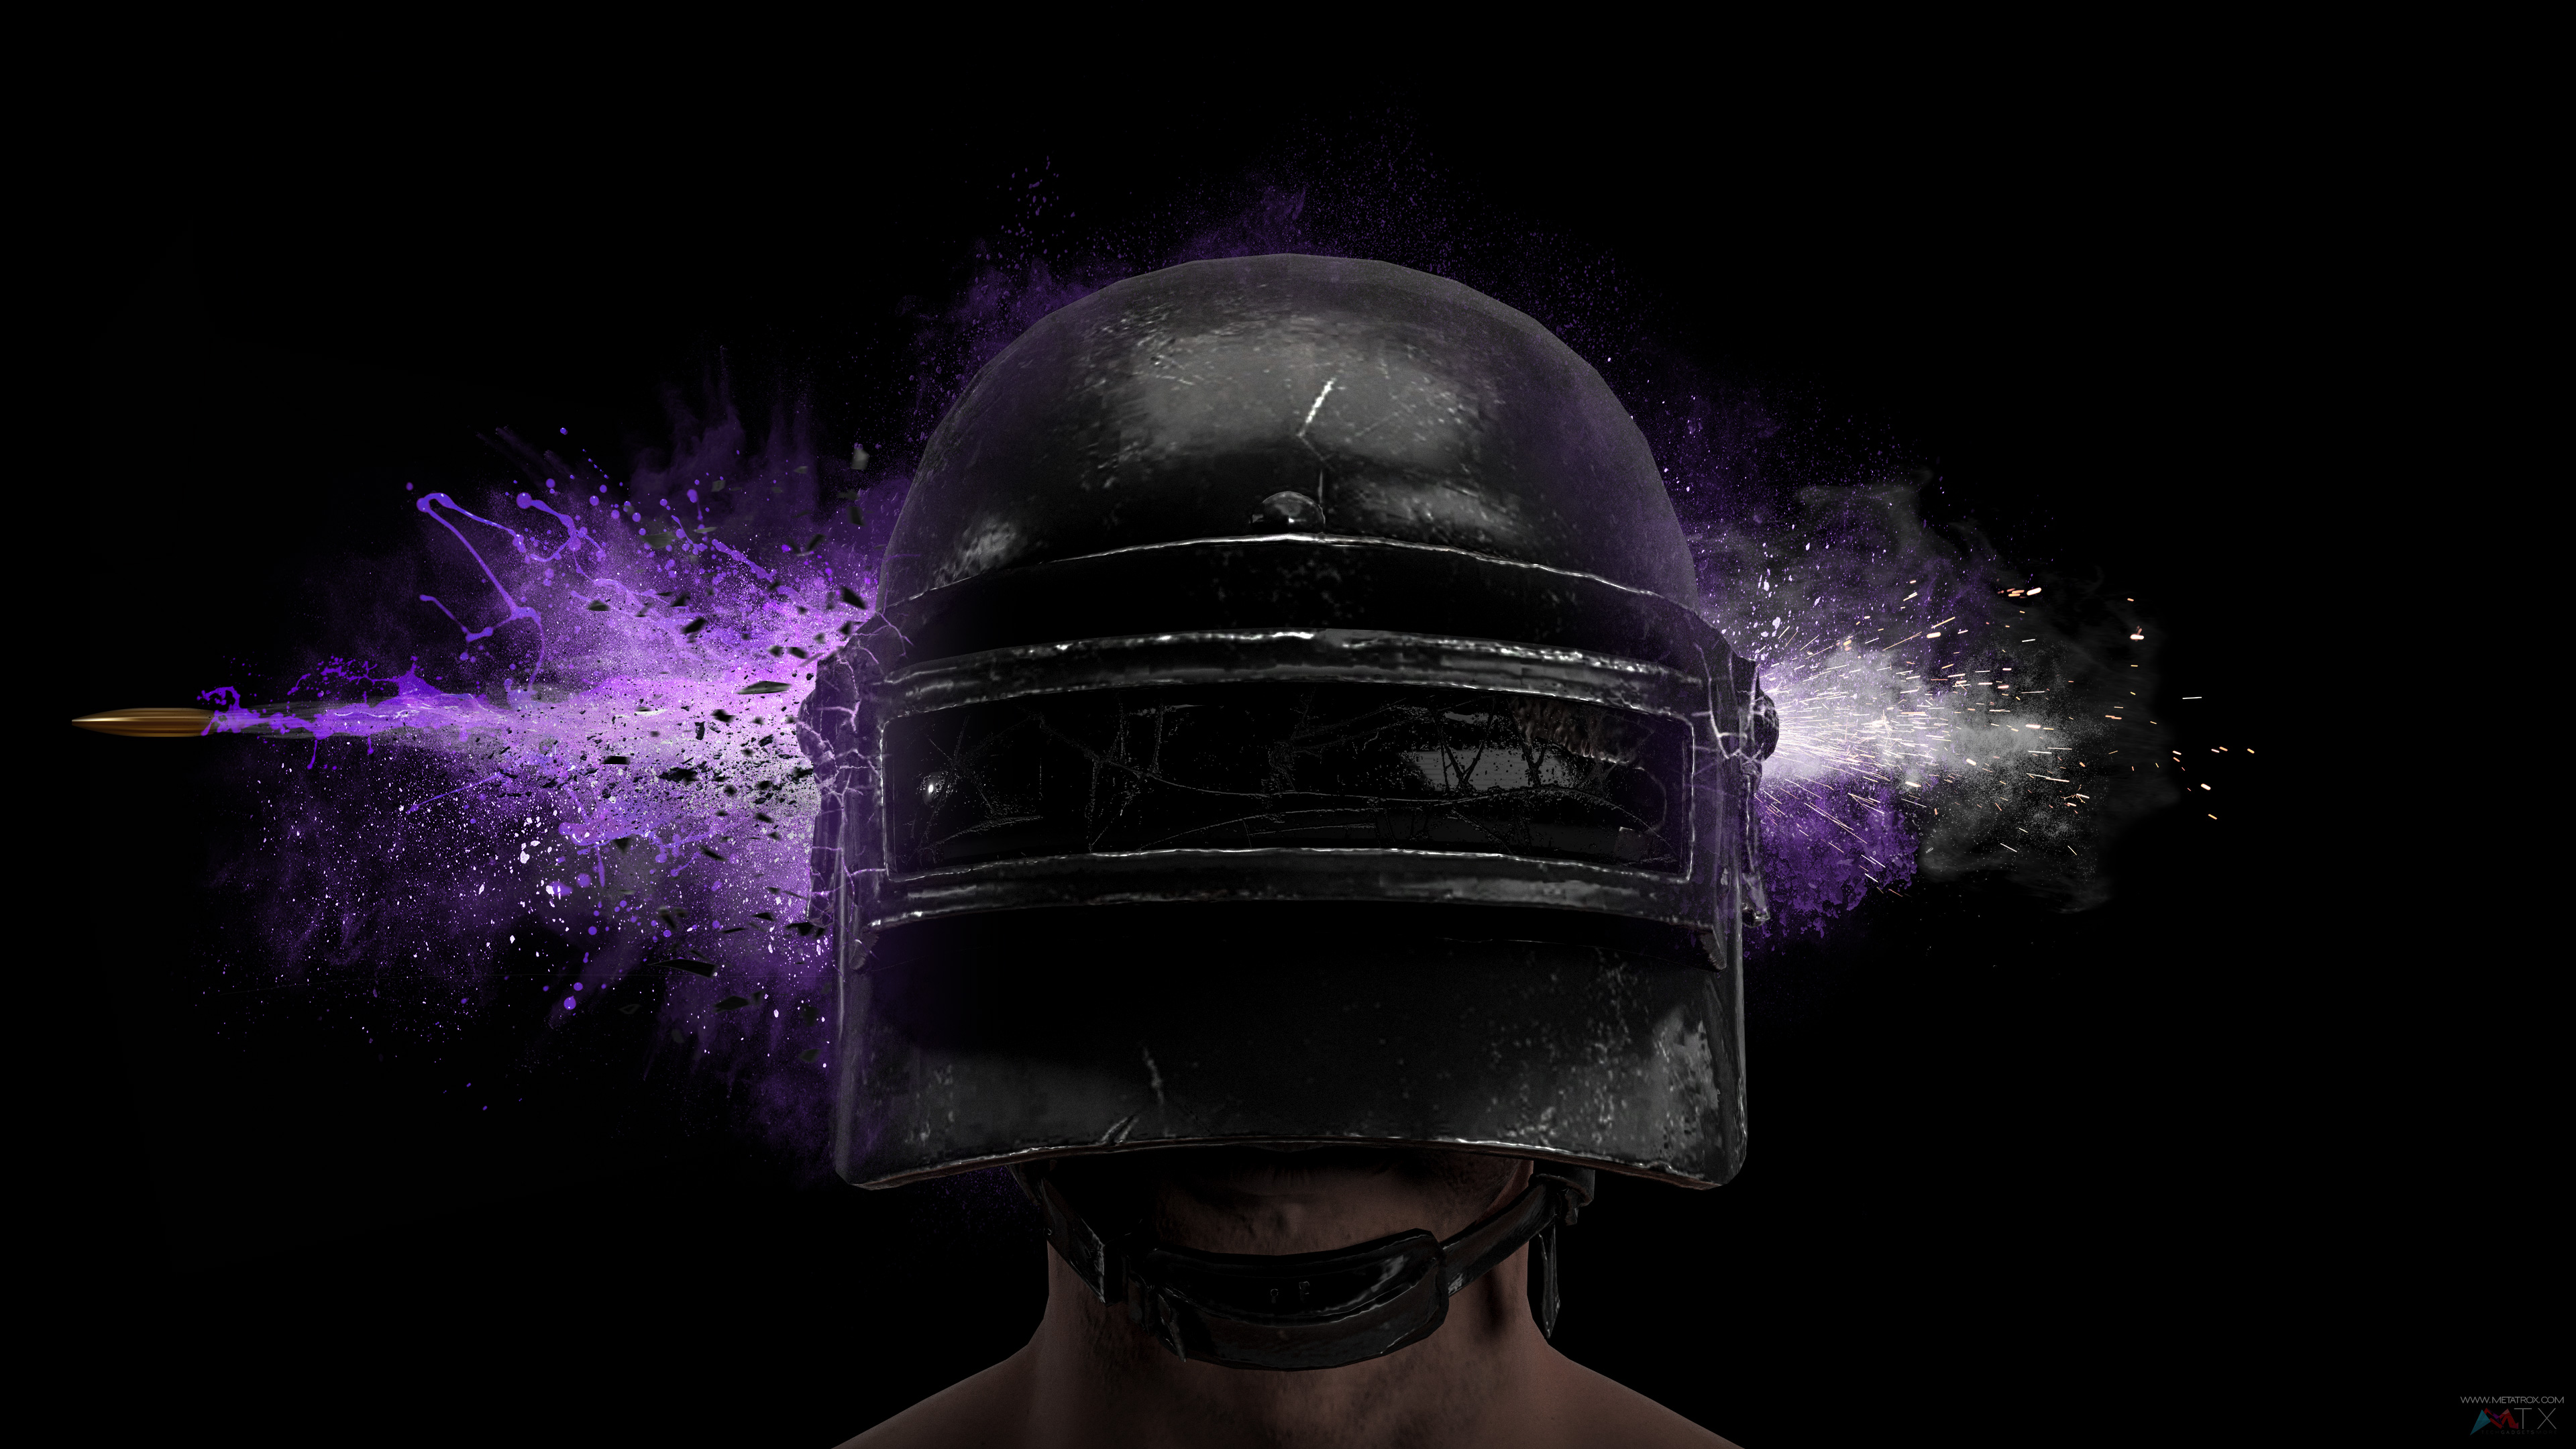 Pubg Best Hd Wallpapers Pubg: 3840x2160 PUBG Game Helmet Guy 4k 4k HD 4k Wallpapers